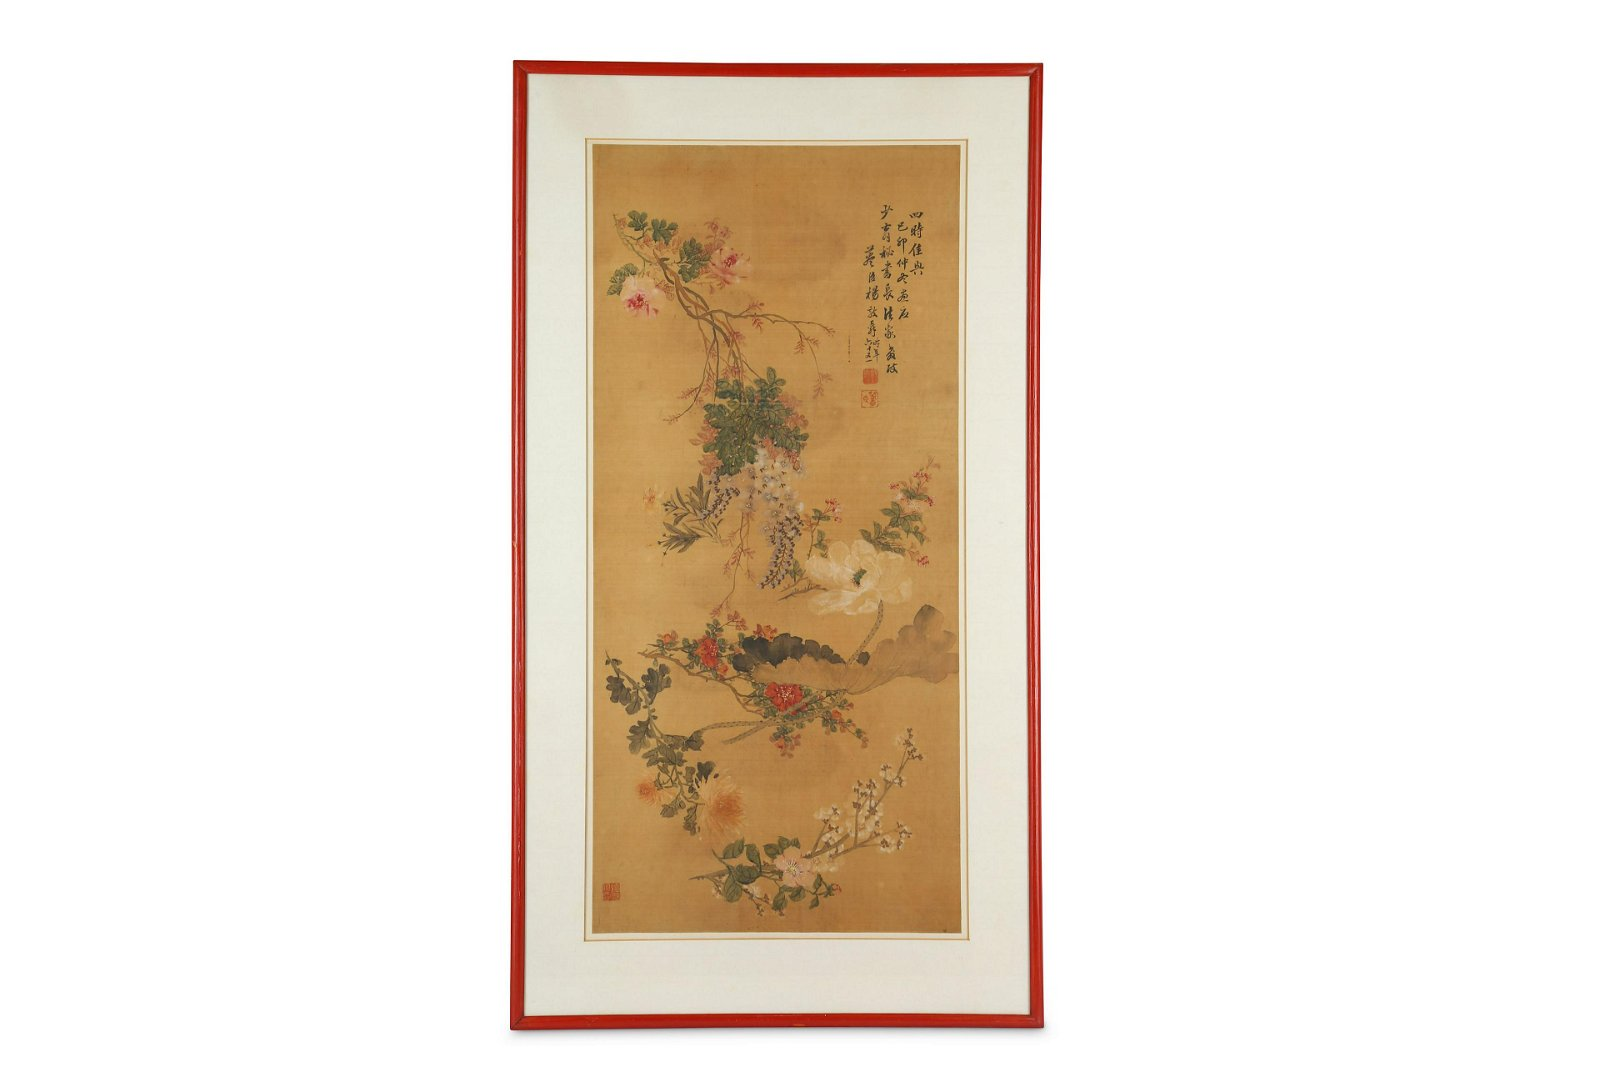 A CHINESE 'FLOWER SPRAYS' PAINTING.